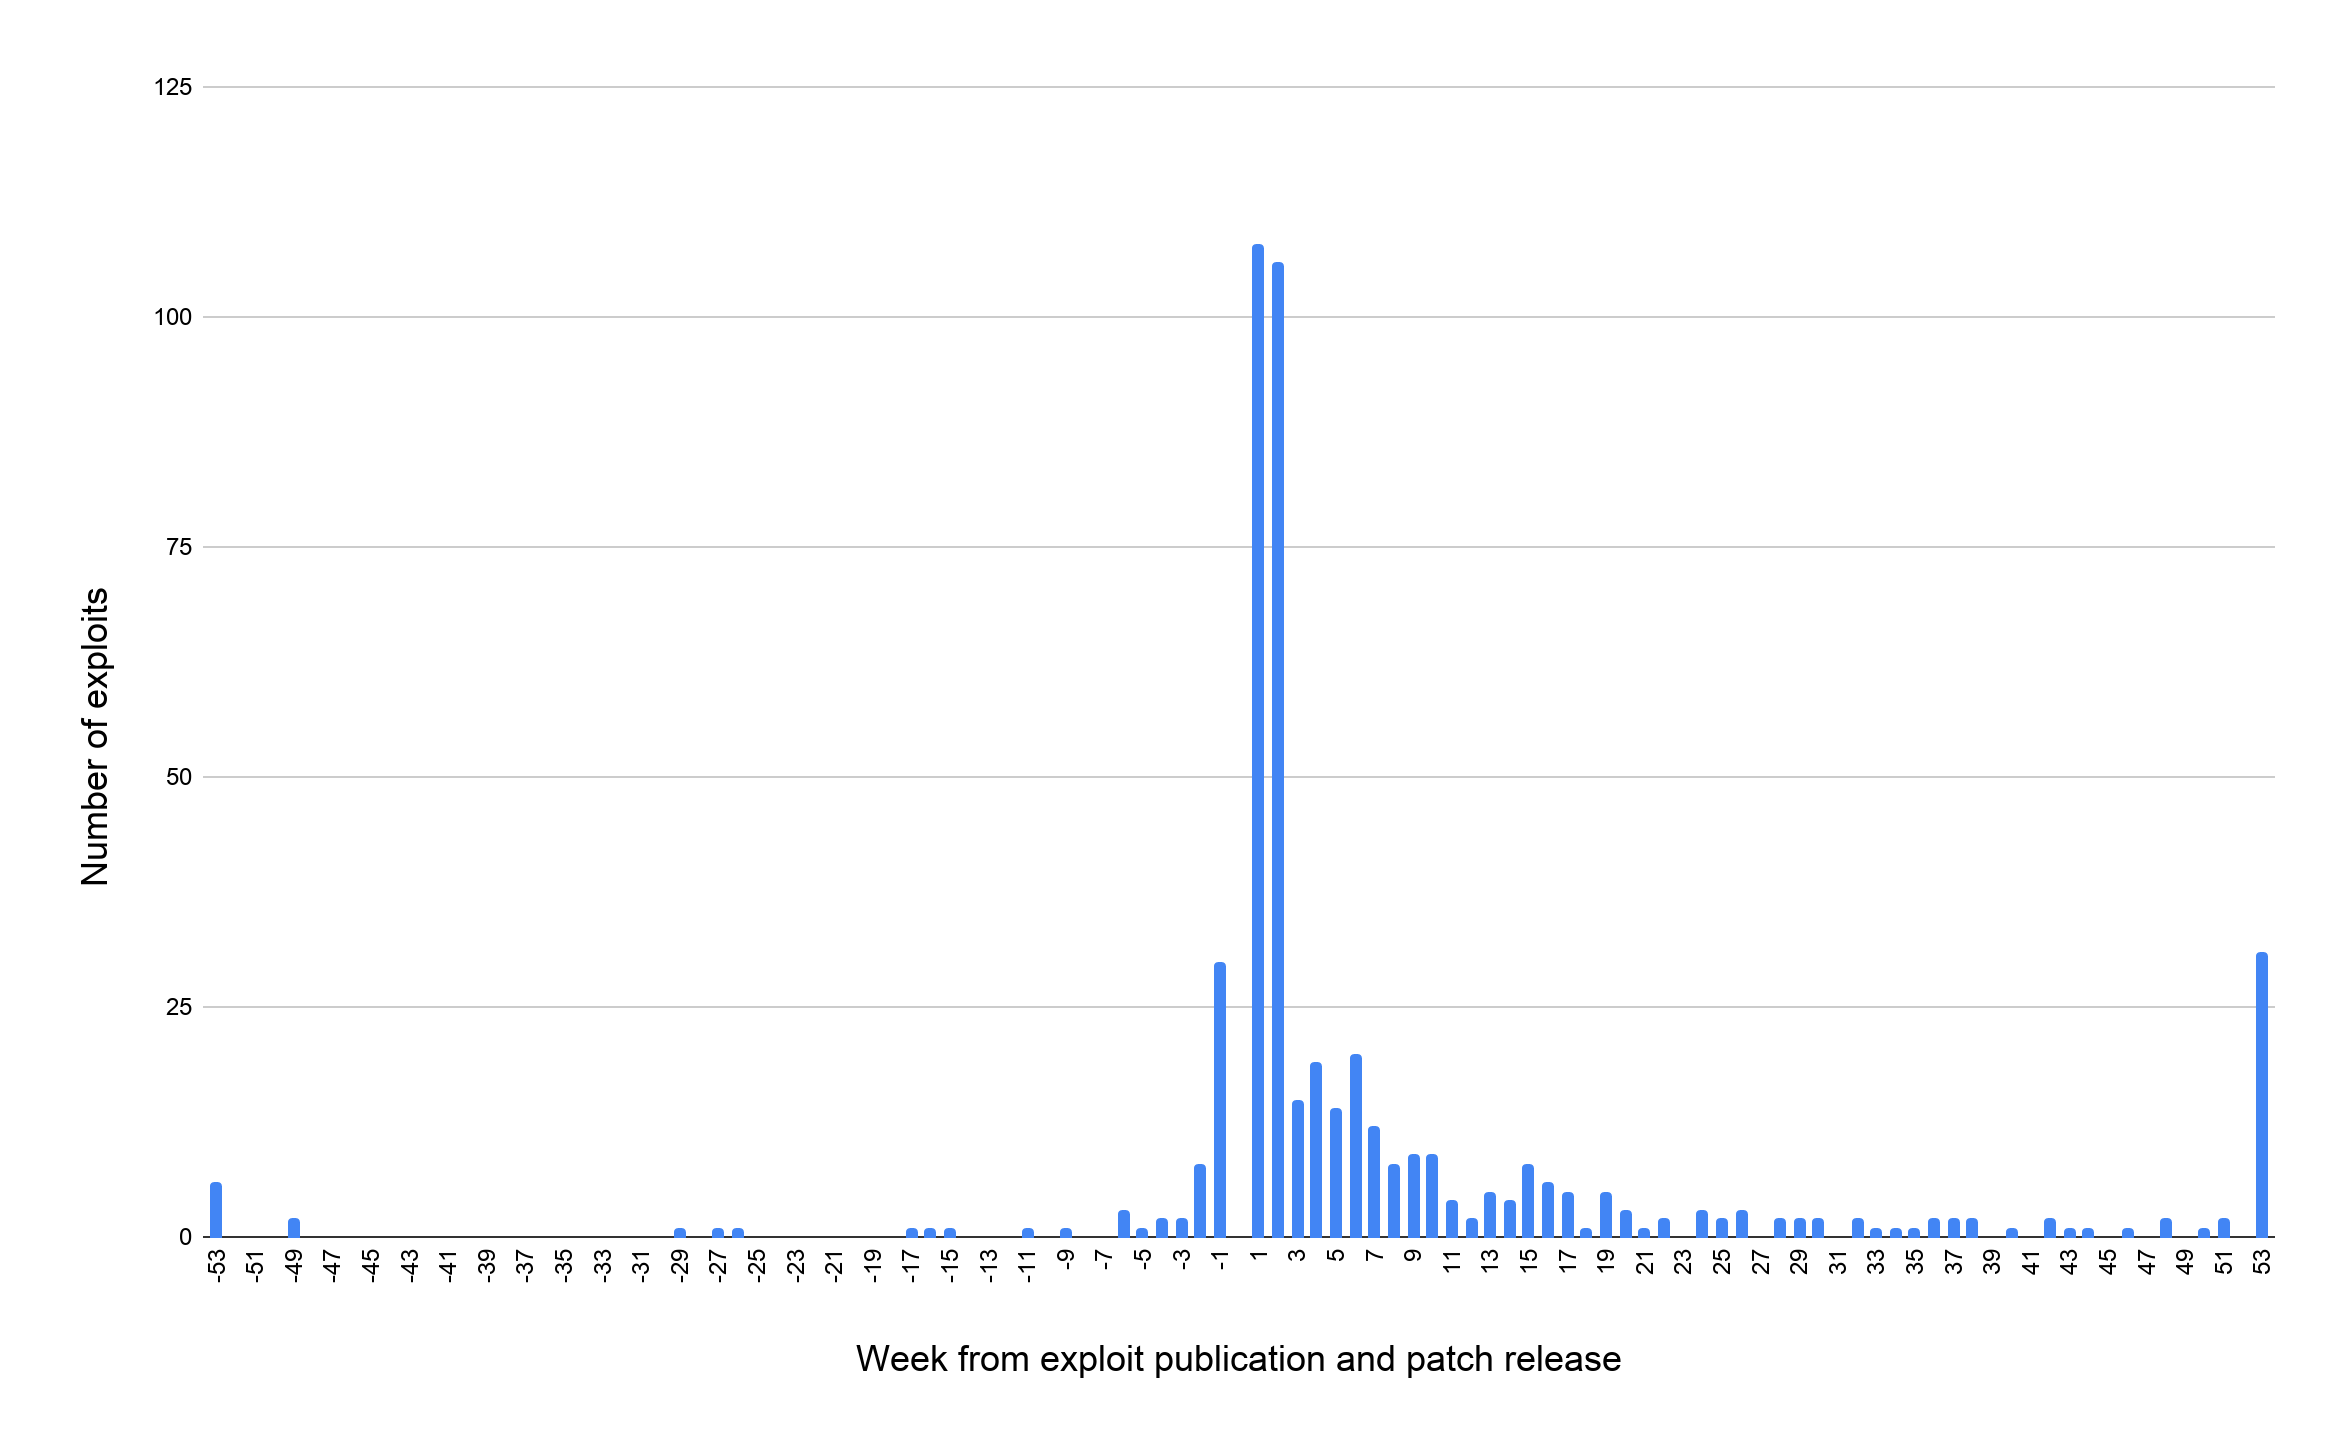 Number of exploits (y-axis) vs. Week from exploit publication and patch release (x-axis)